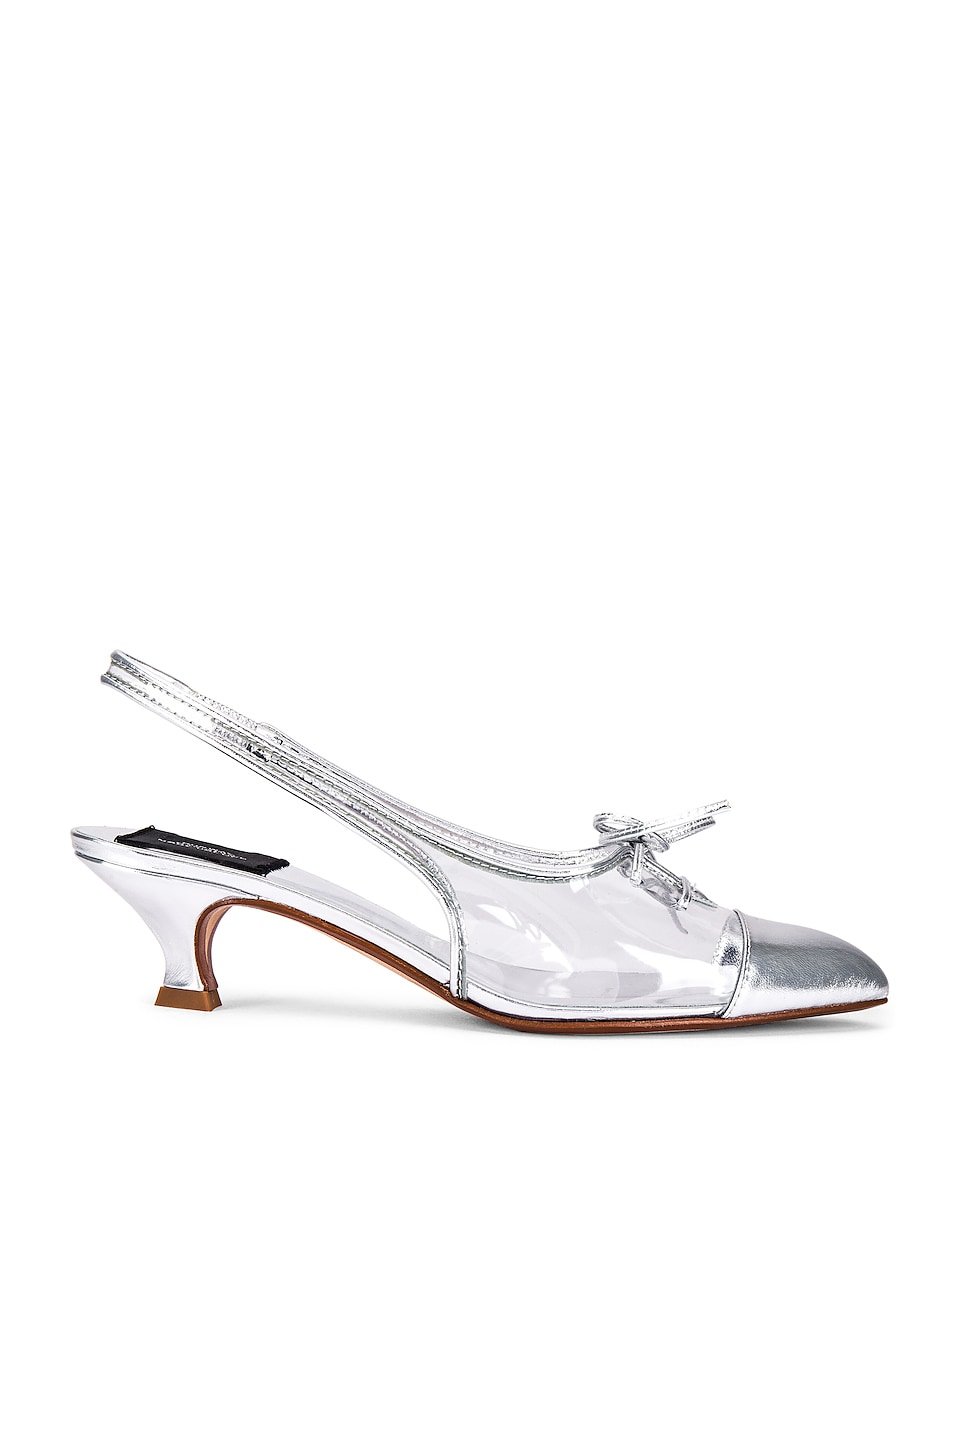 Marc Jacobs Toe Cap Slingback Pump in Clear